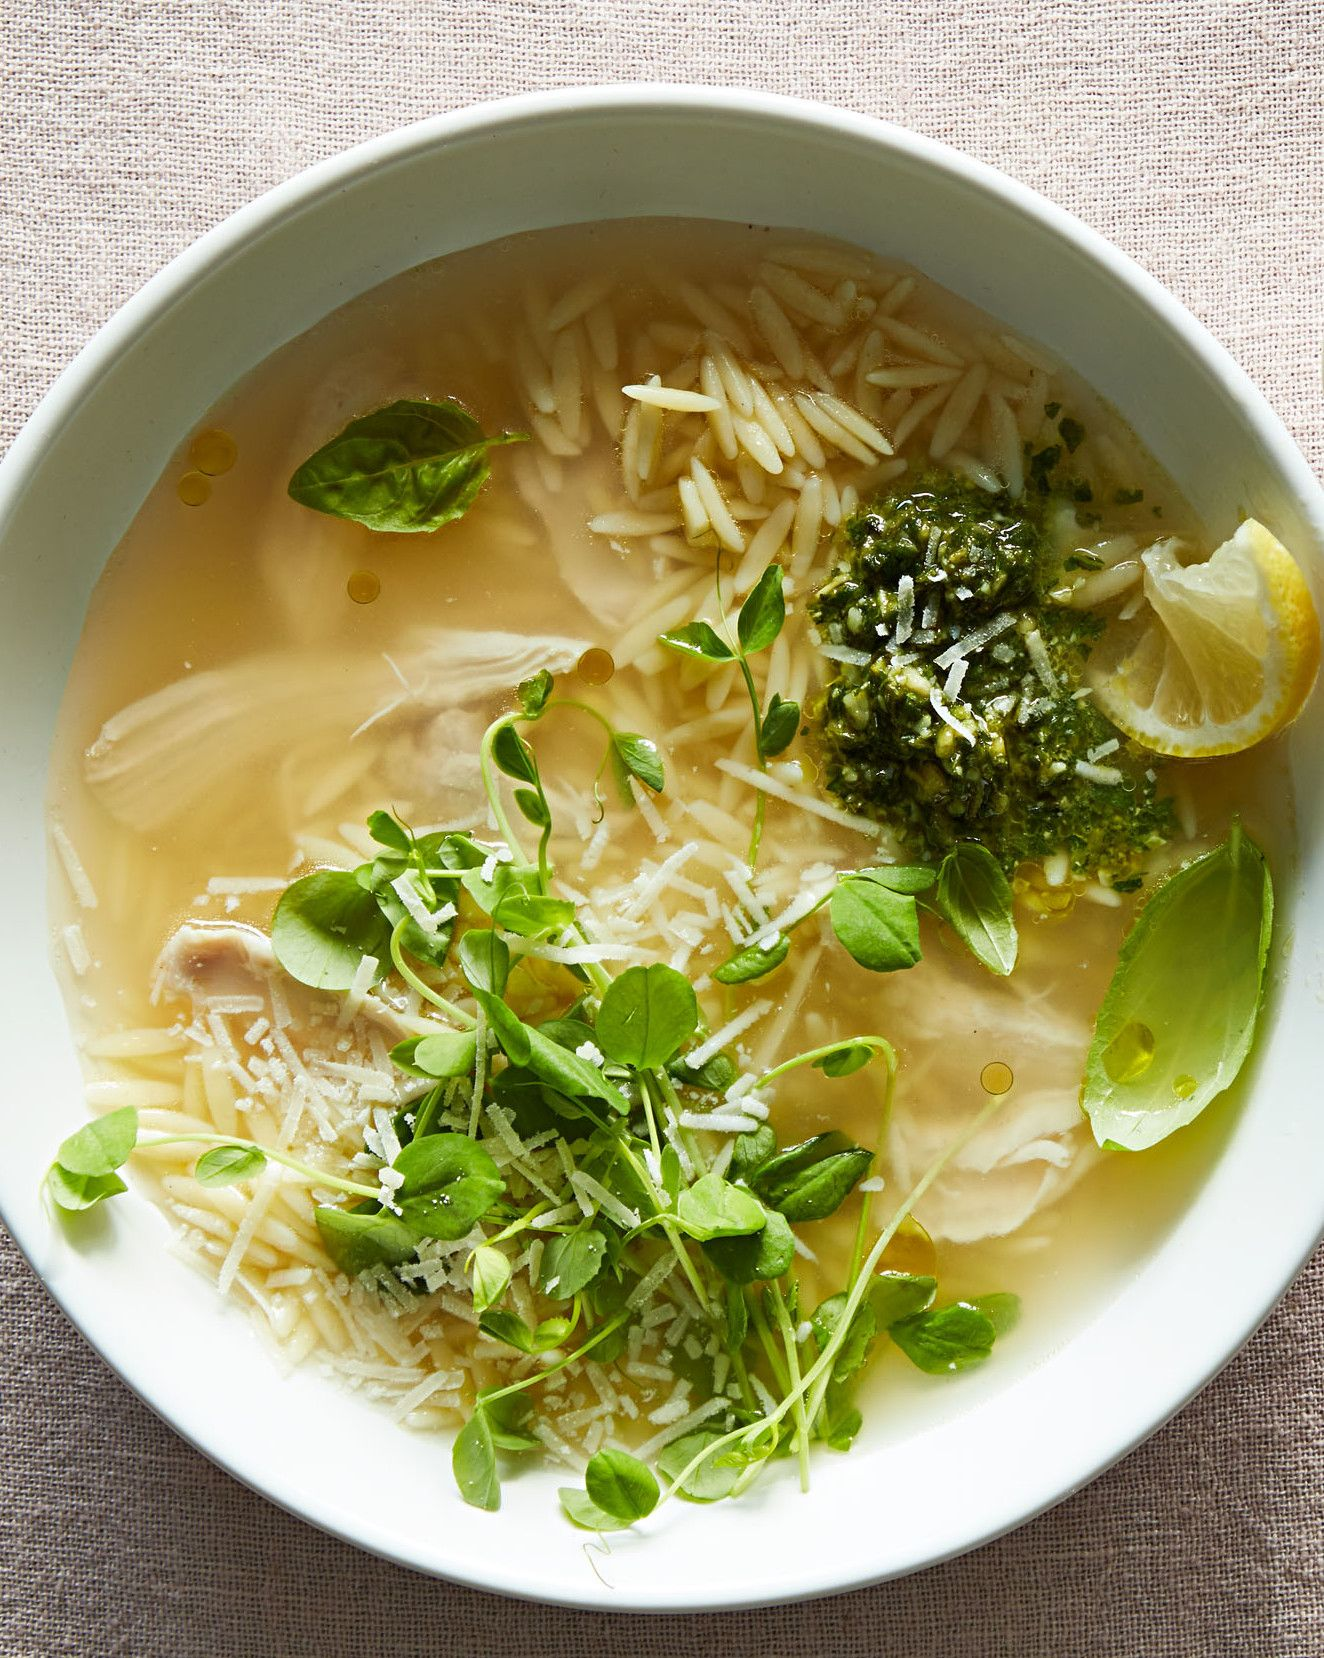 How to lighten the broth